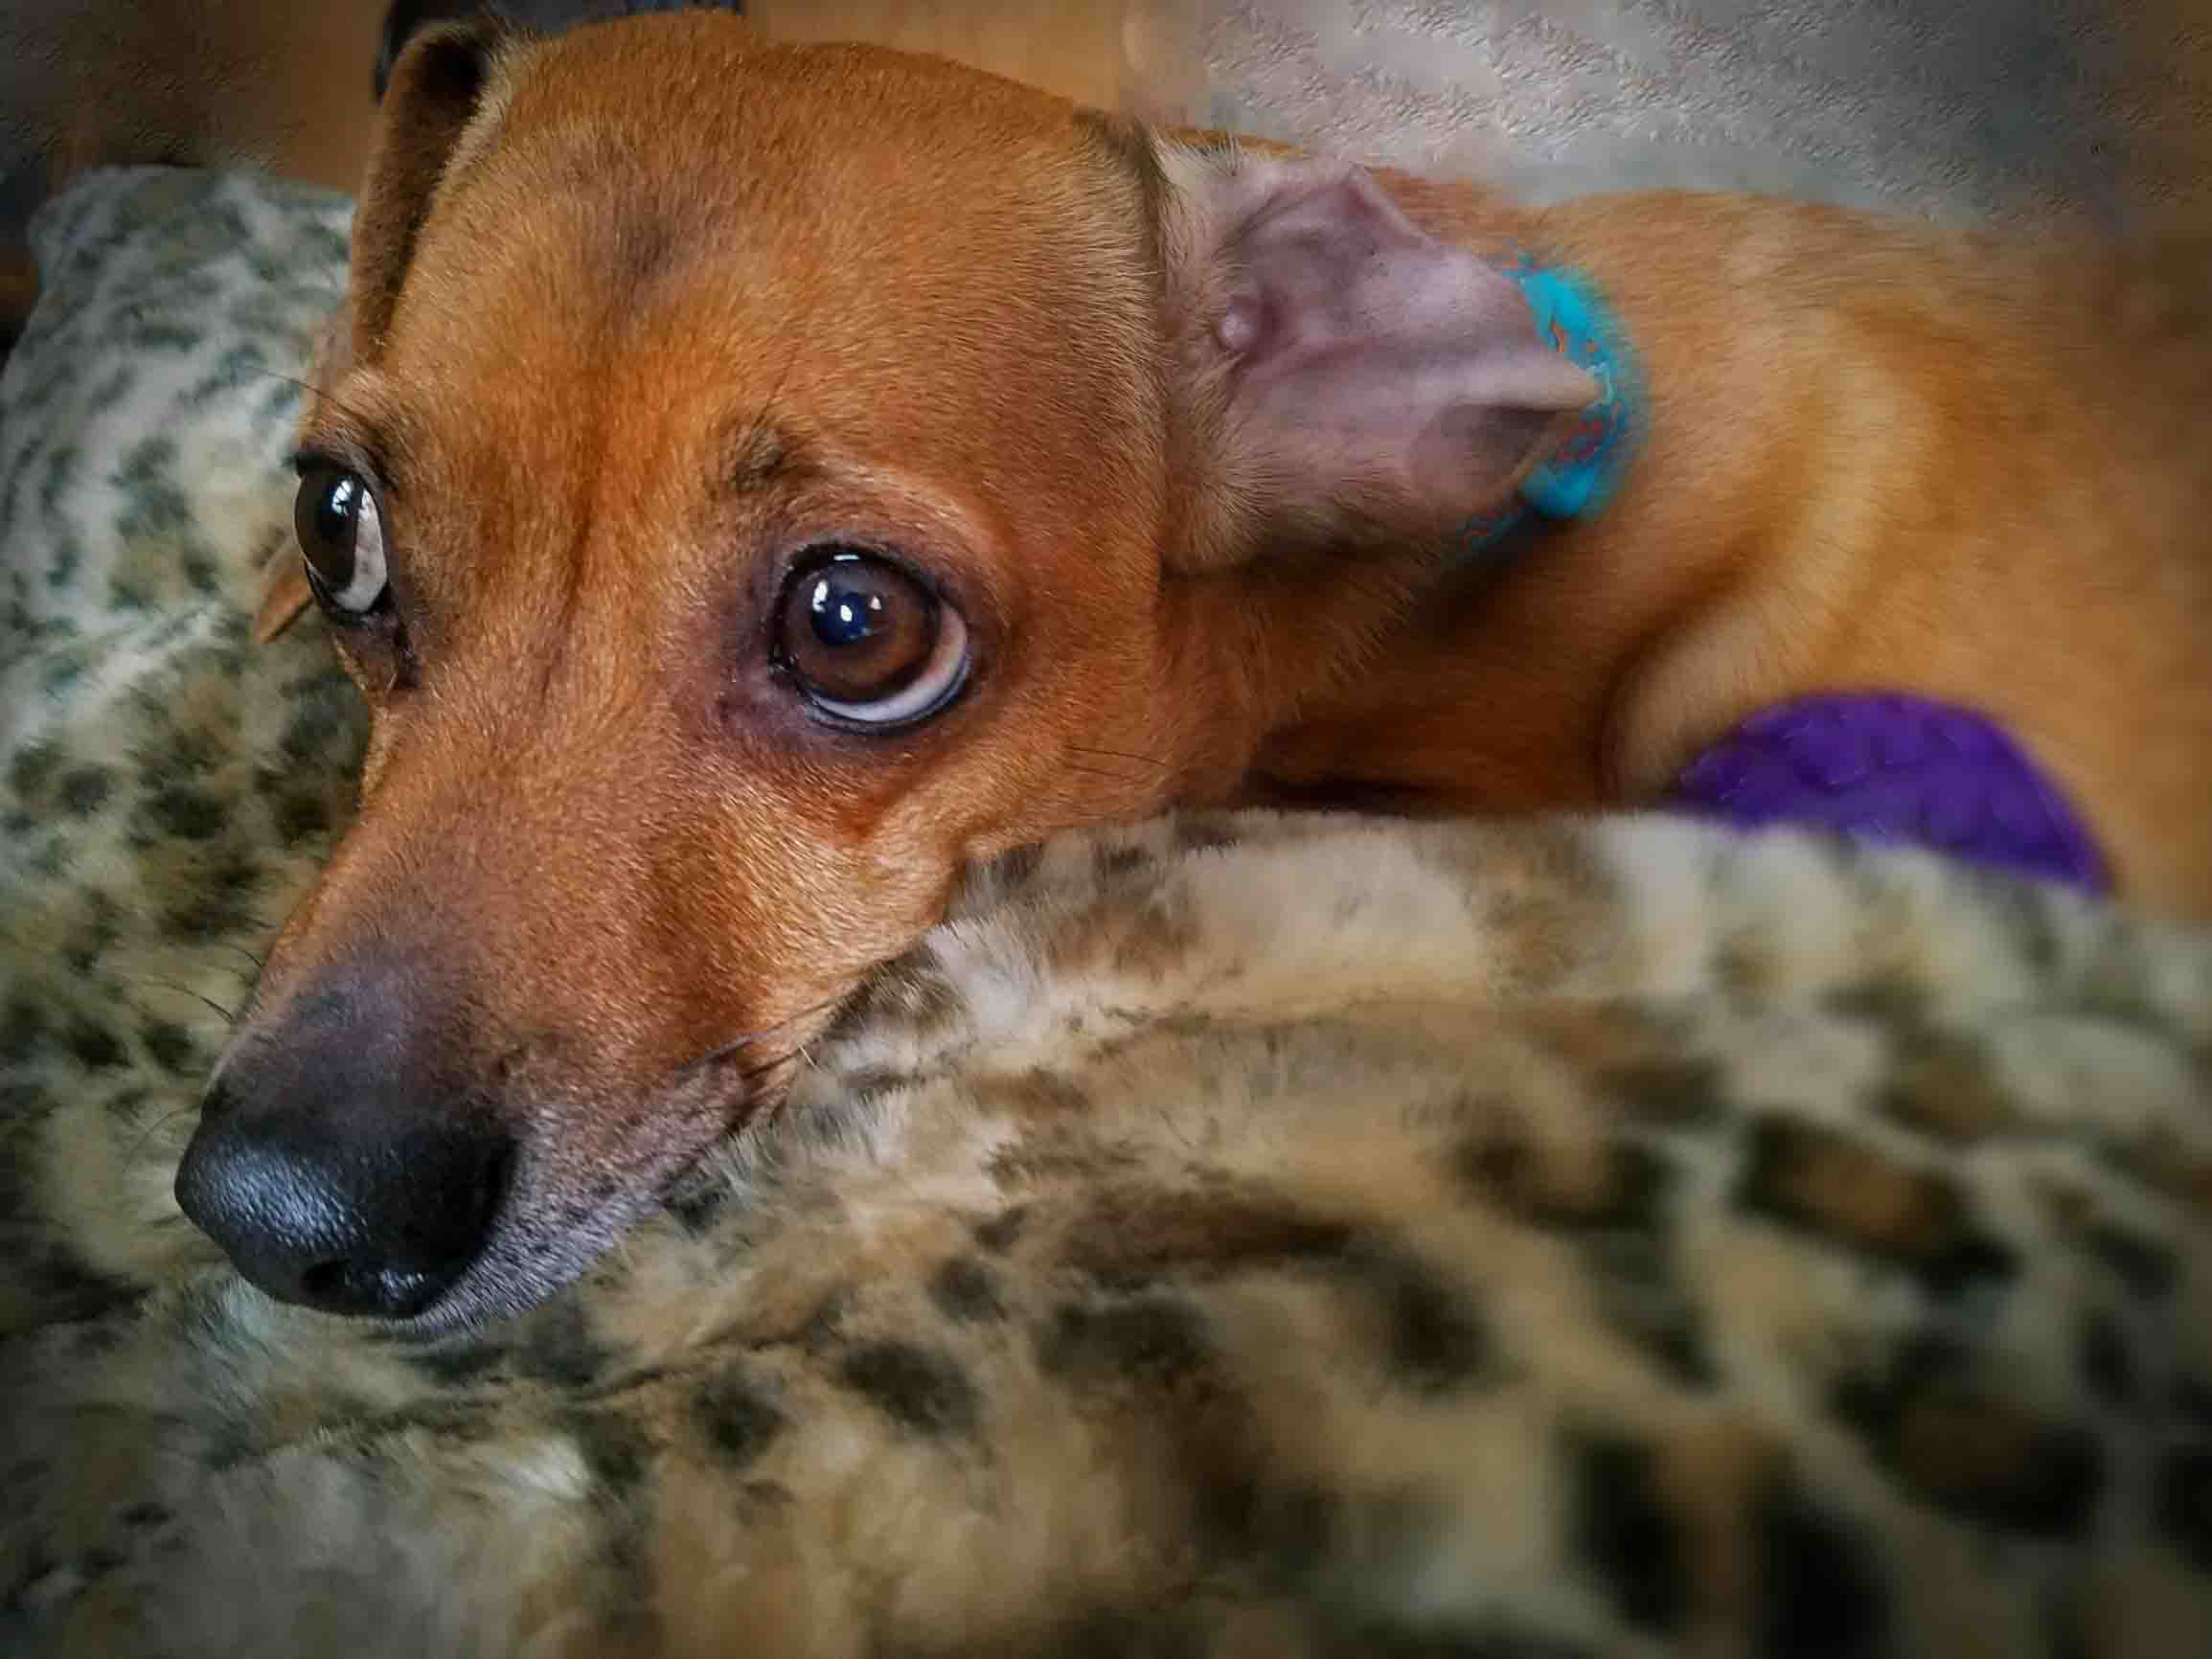 My baby doxie a year after surgery. From his good side. Photo: (c) Barb Ayers, DogDairy.org